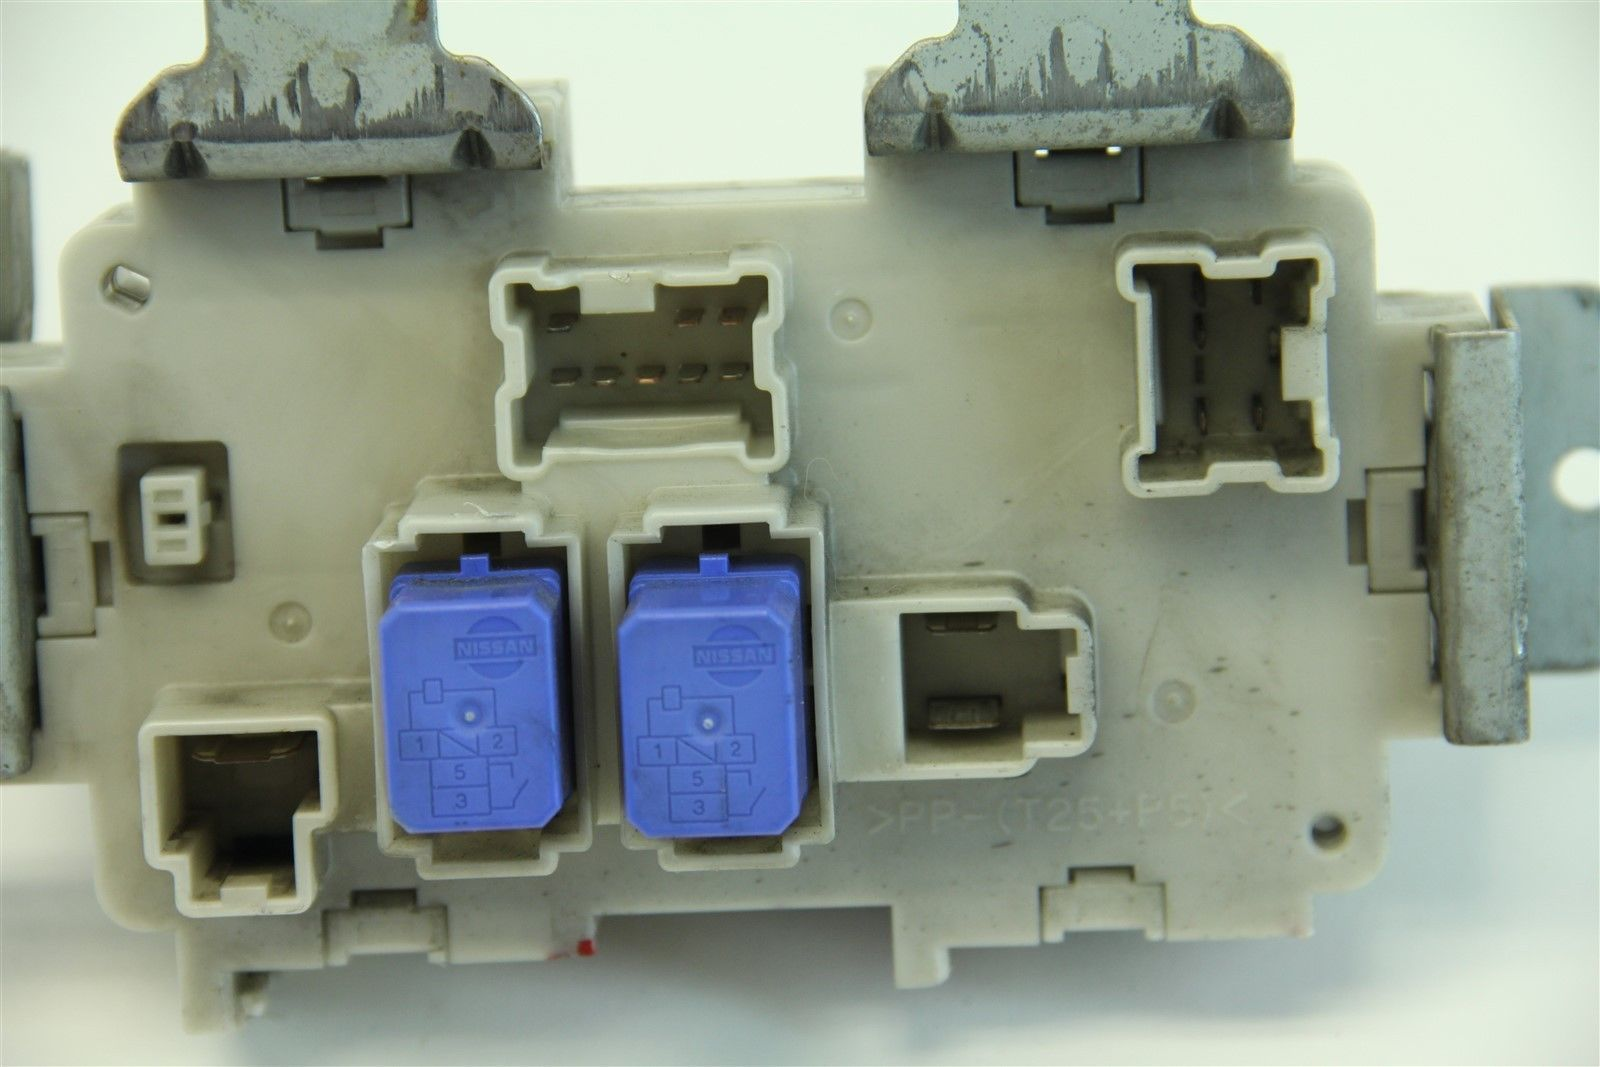 2006 infiniti g35 fuse box diagram infiniti 3 g35 fuse box #14